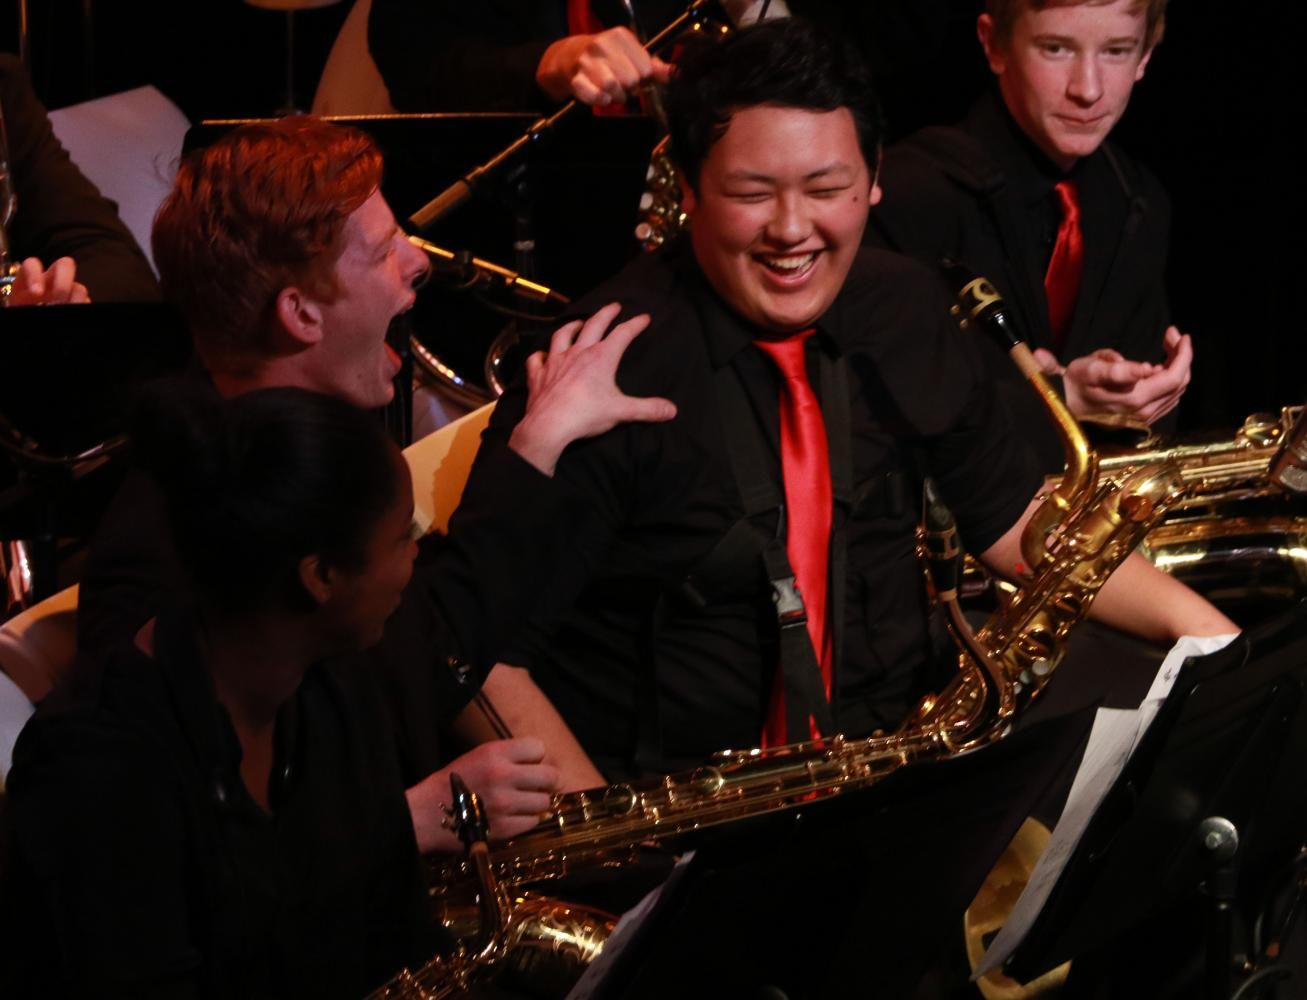 Max Knibbe cheers as Simon Zombors name is called by director Darin Faul. Each member of the band, especially the seniors, were celebrated at Jazz Alley.